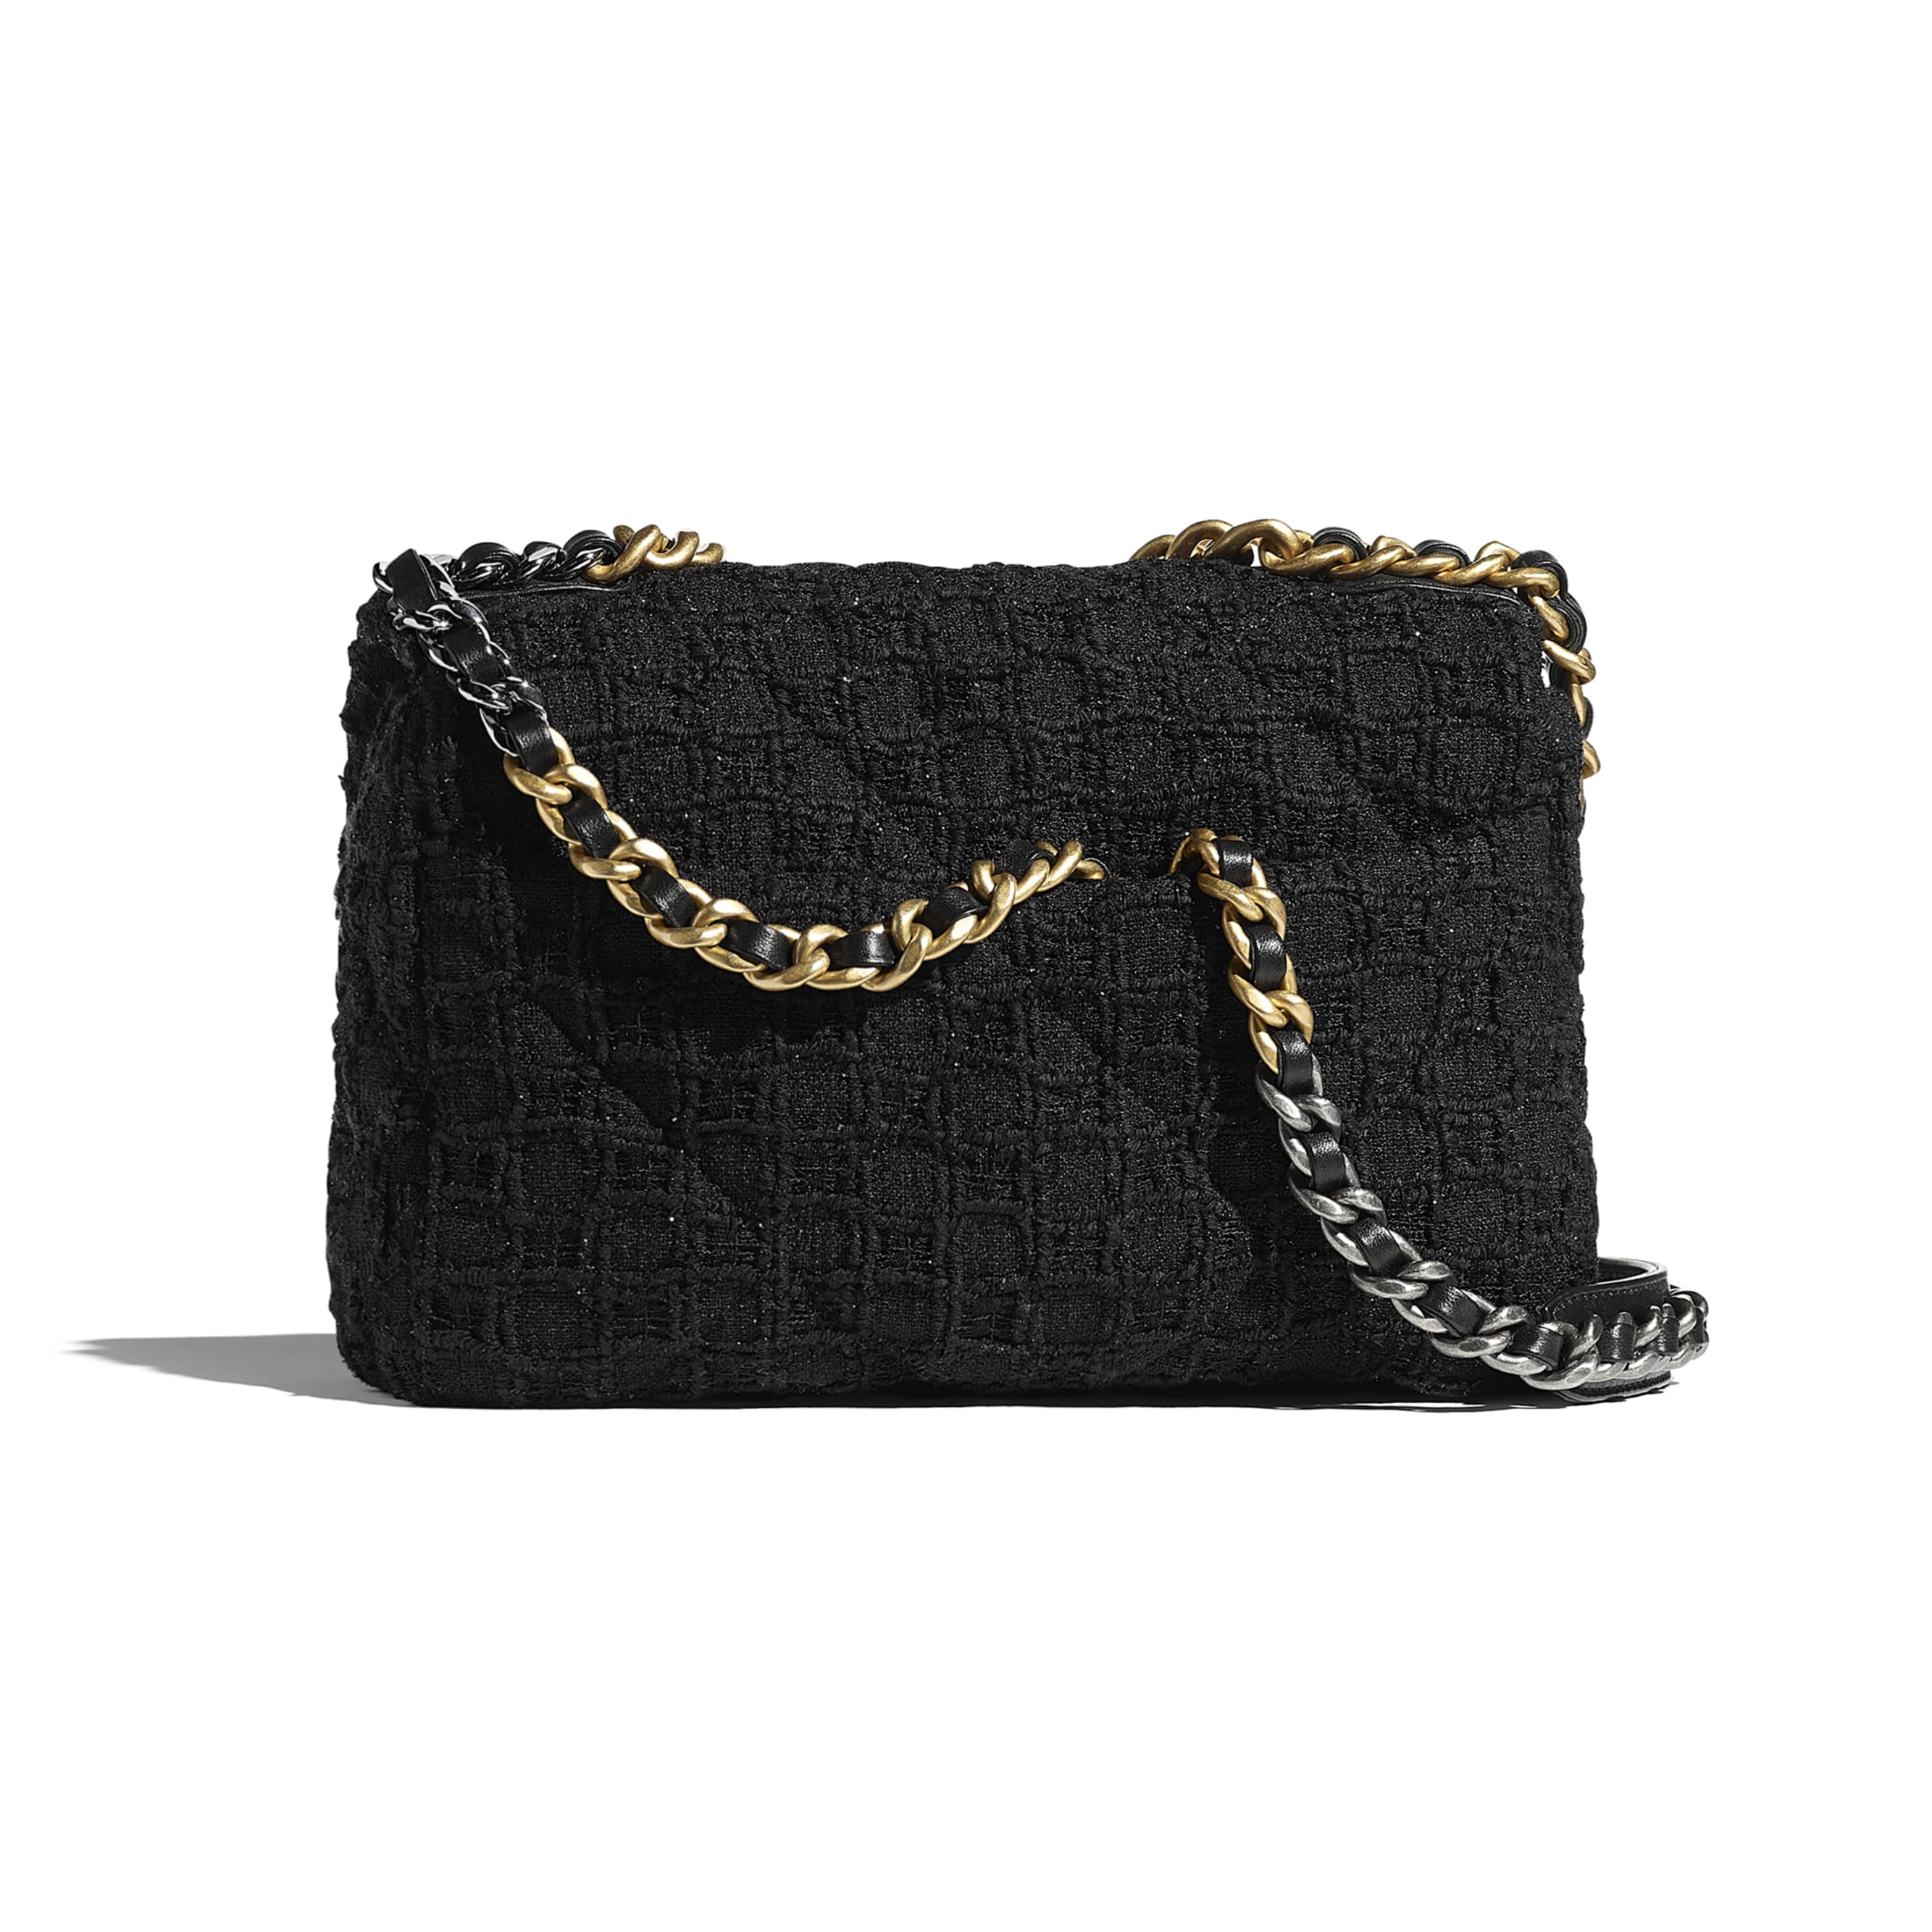 CHANEL 19 Flap Bag - Black - Tweed, Gold-Tone, Silver-Tone & Ruthenium-Finish Metal - CHANEL - Alternative view - see standard sized version